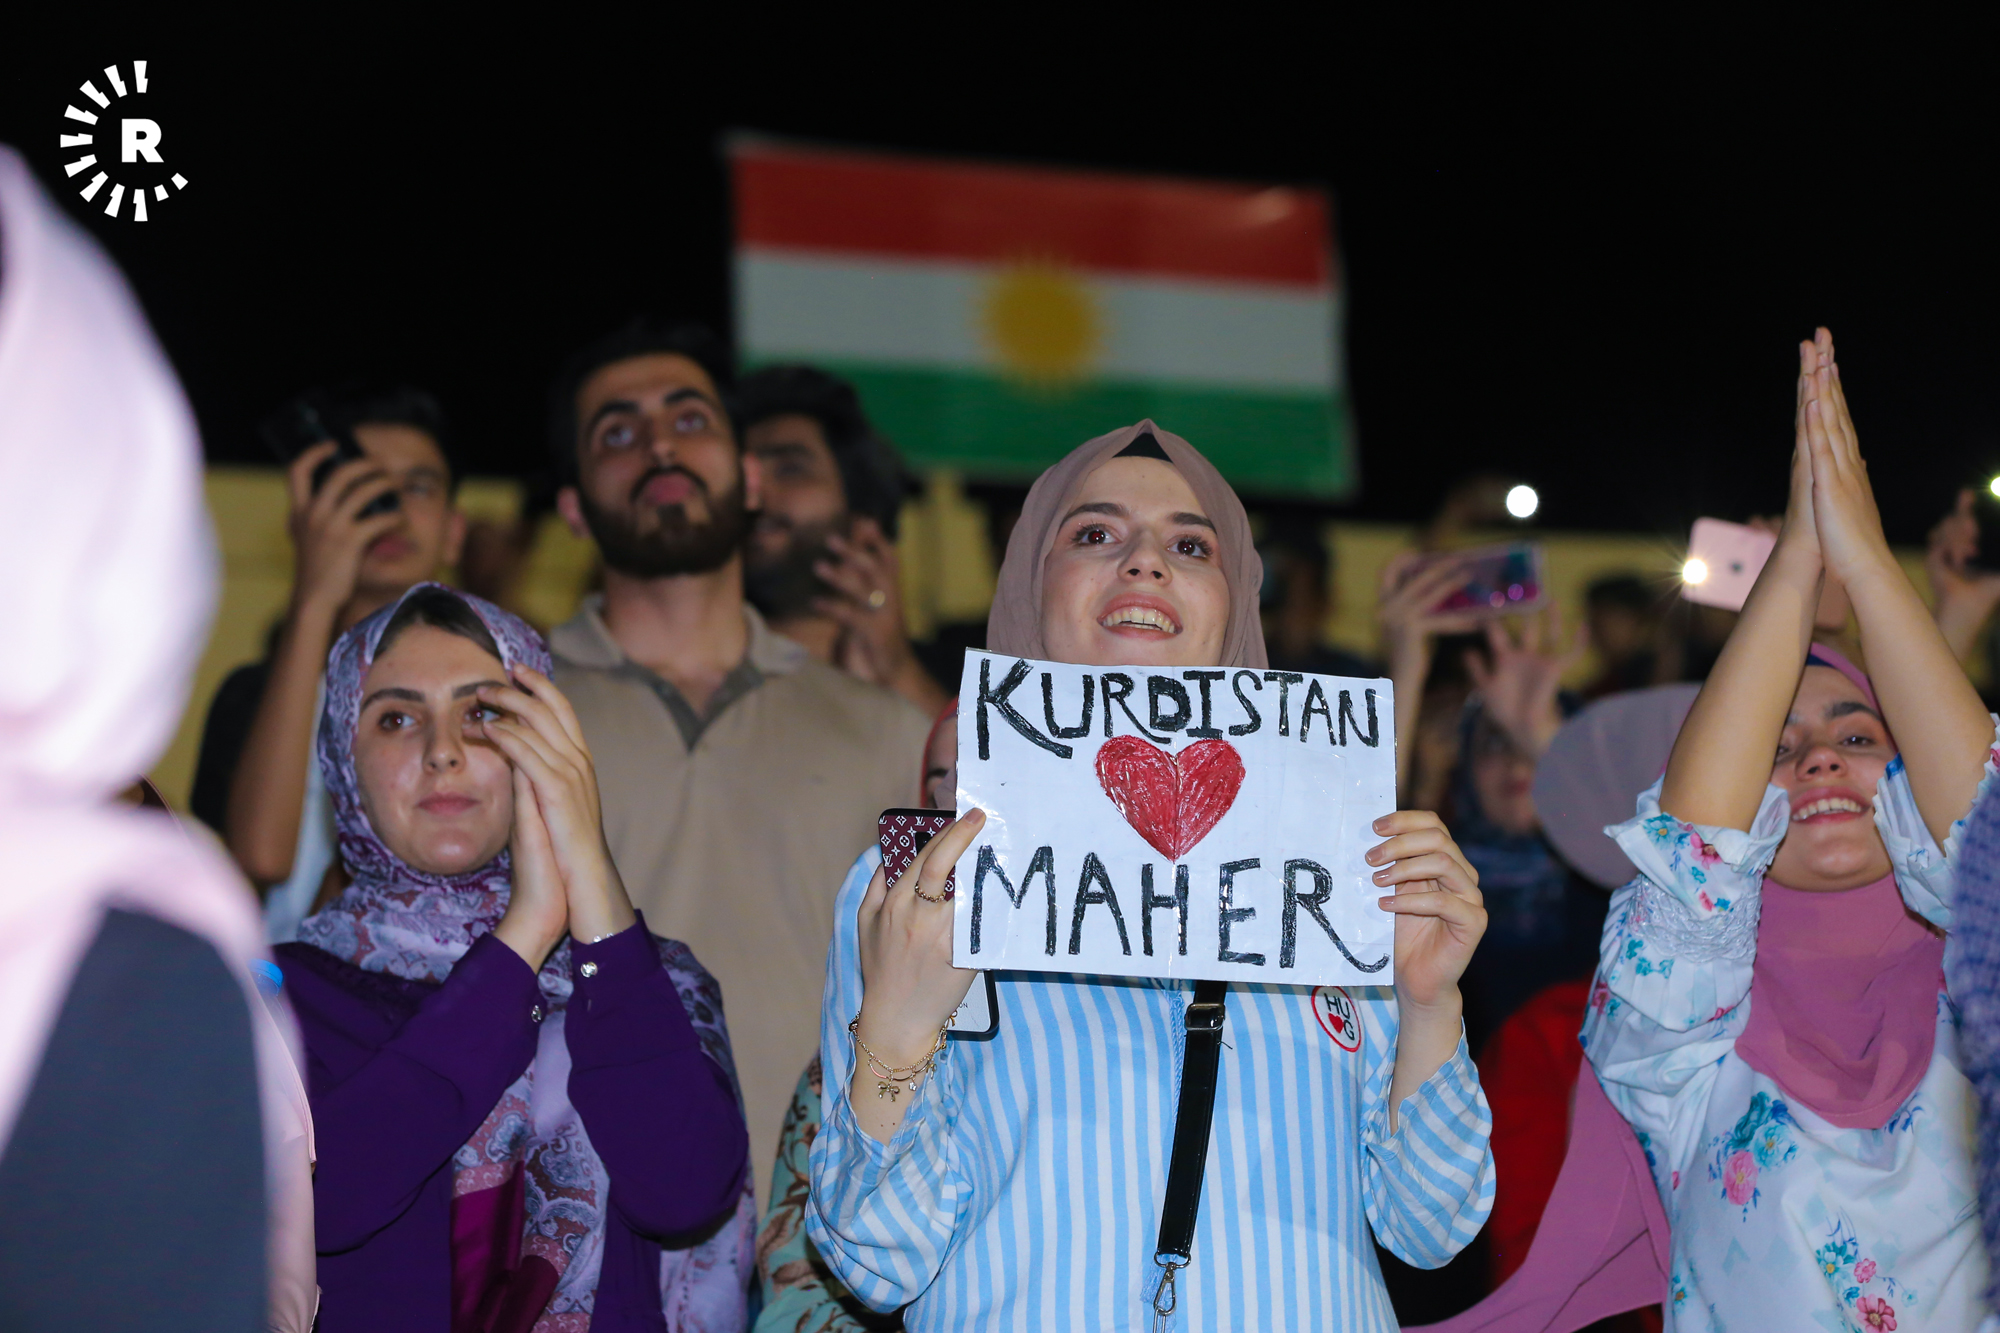 Maher Zain performs in Erbil for first time | Rudaw net